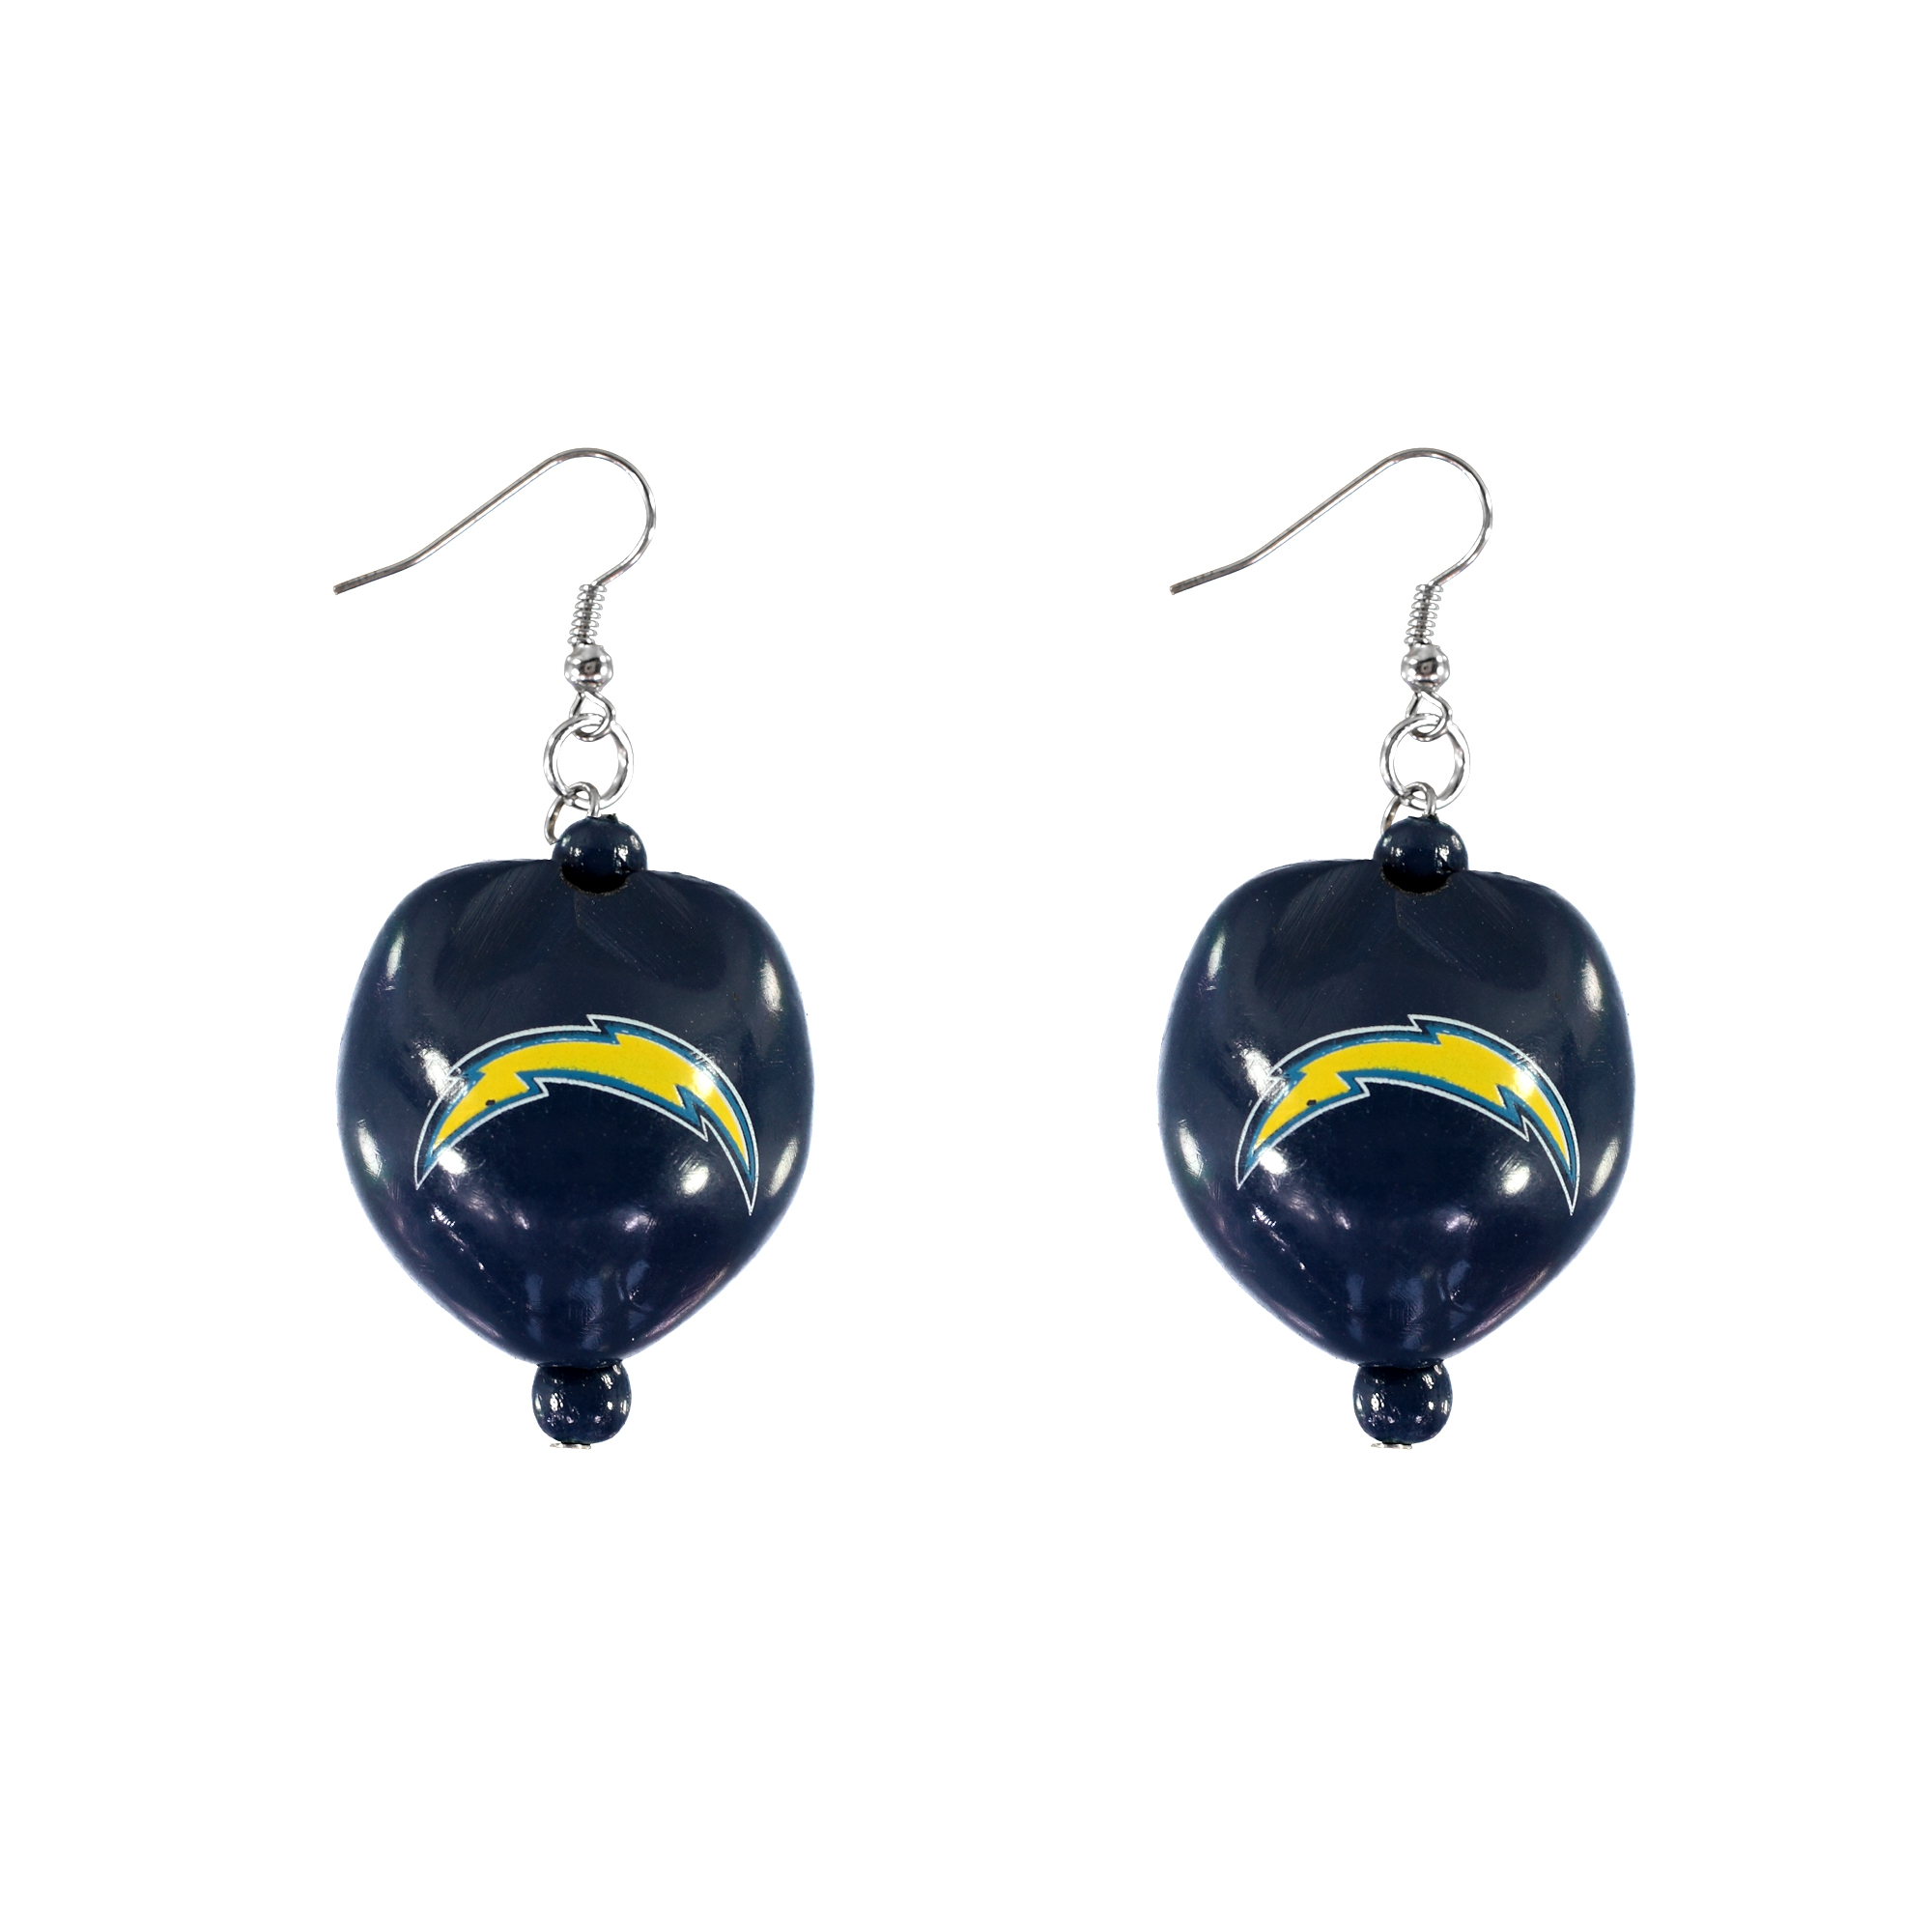 Los Angeles Chargers Kukui Nut Earrings Real Fans Go Nuts